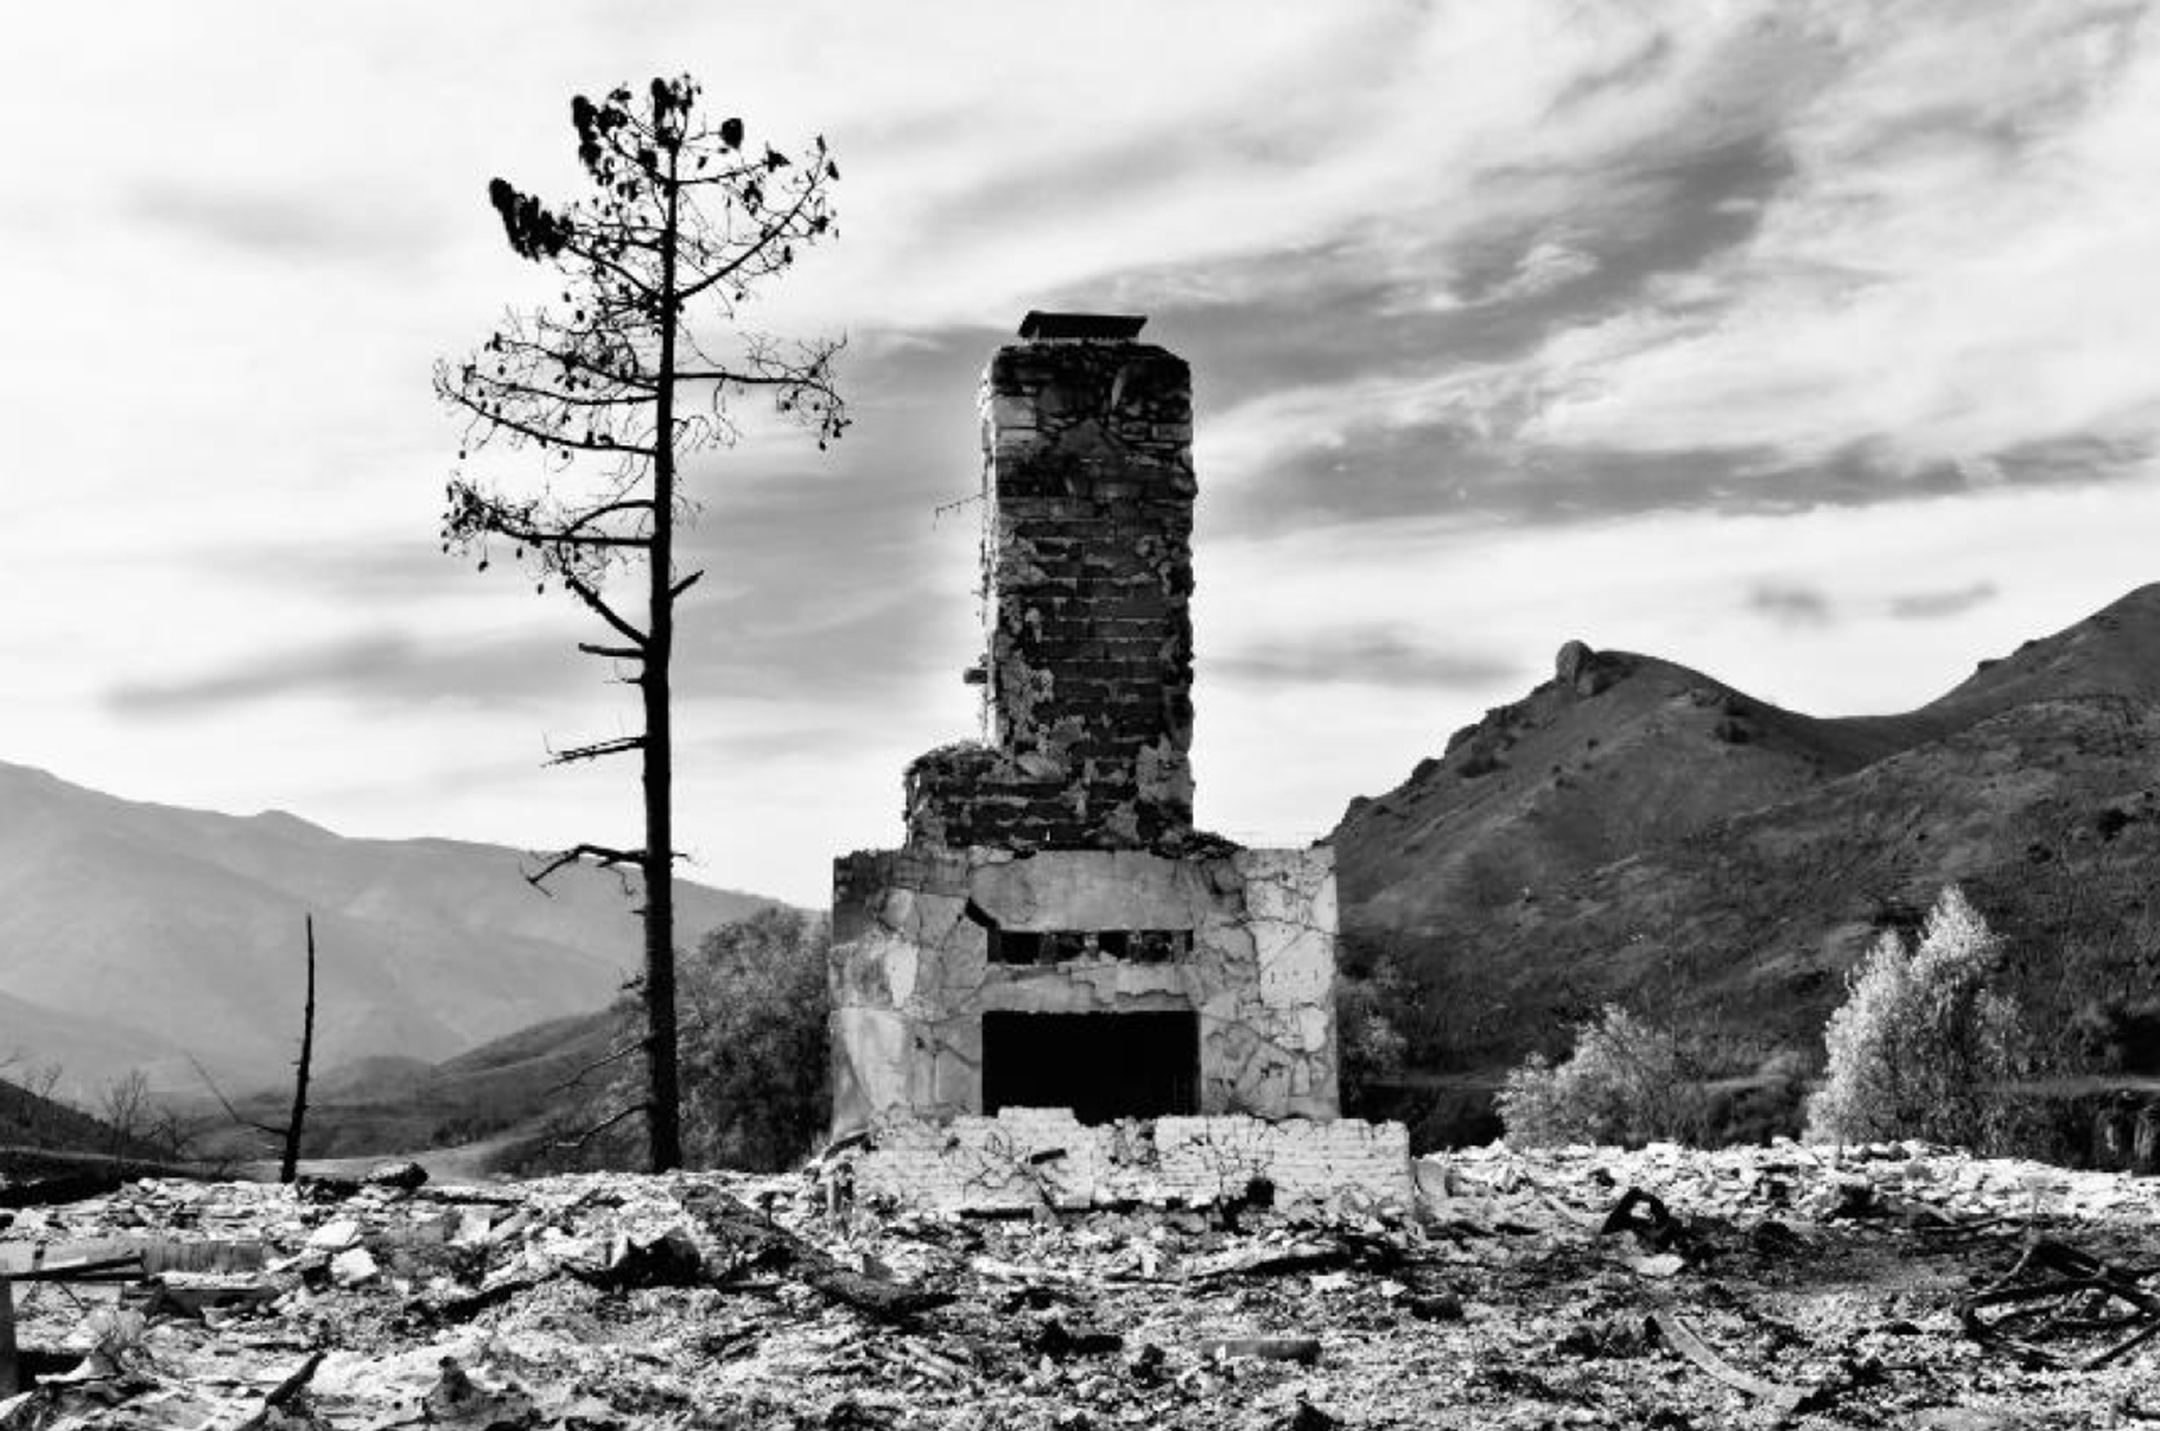 black and white photograph of a burned landscape with the charred remains of a house — a fire place and chimney — at the center of the frame